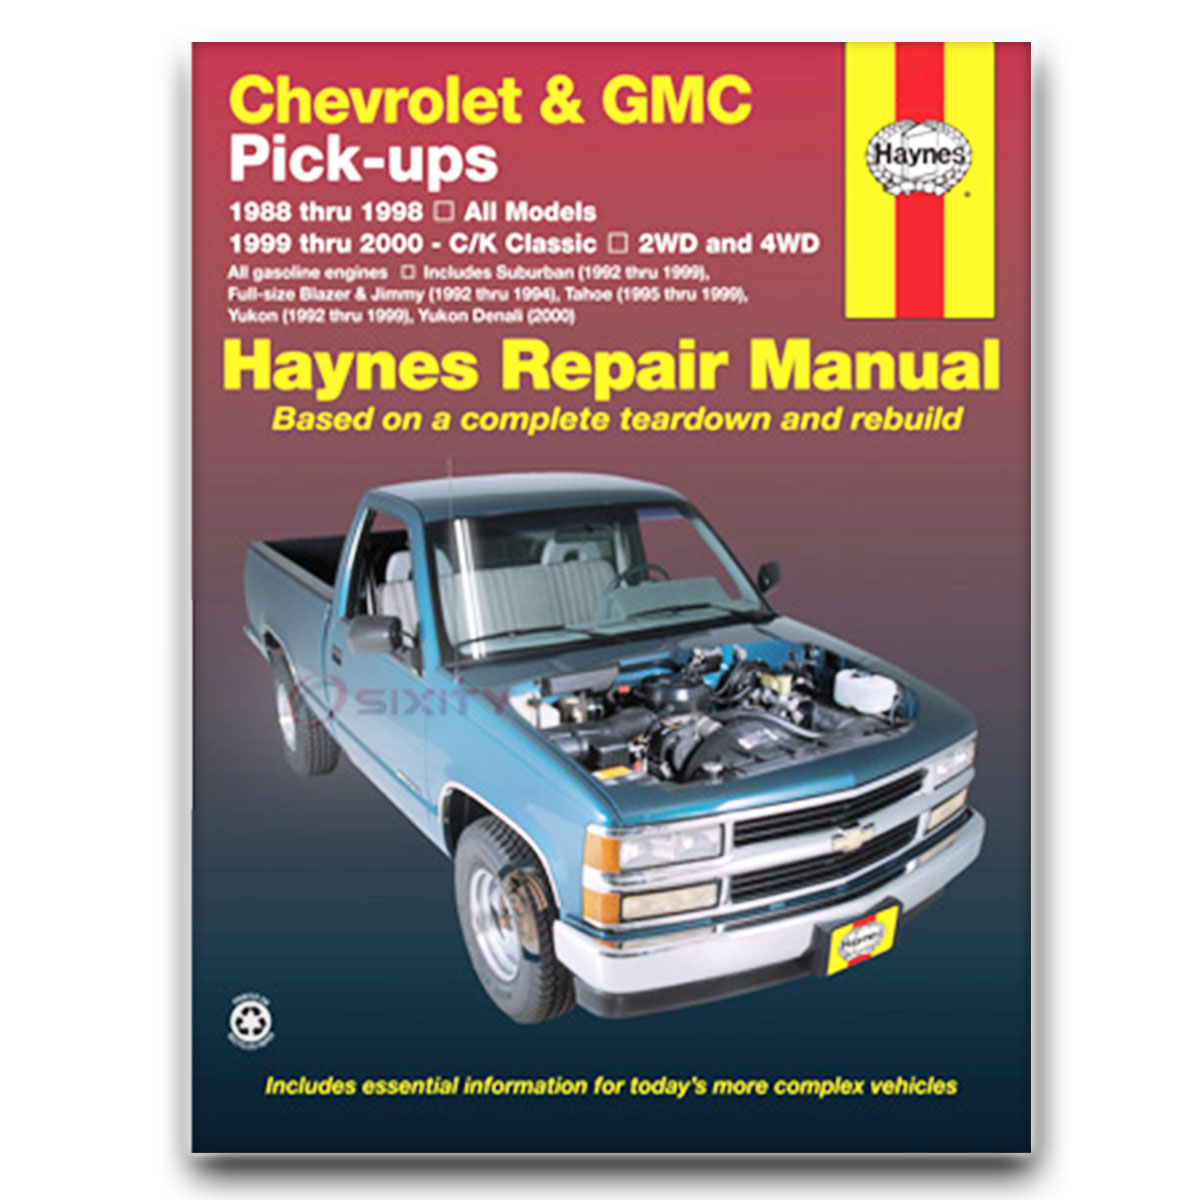 Haynes Repair Manual for Chevy K2500 Suburban LT Silverado LS Base Shop sg